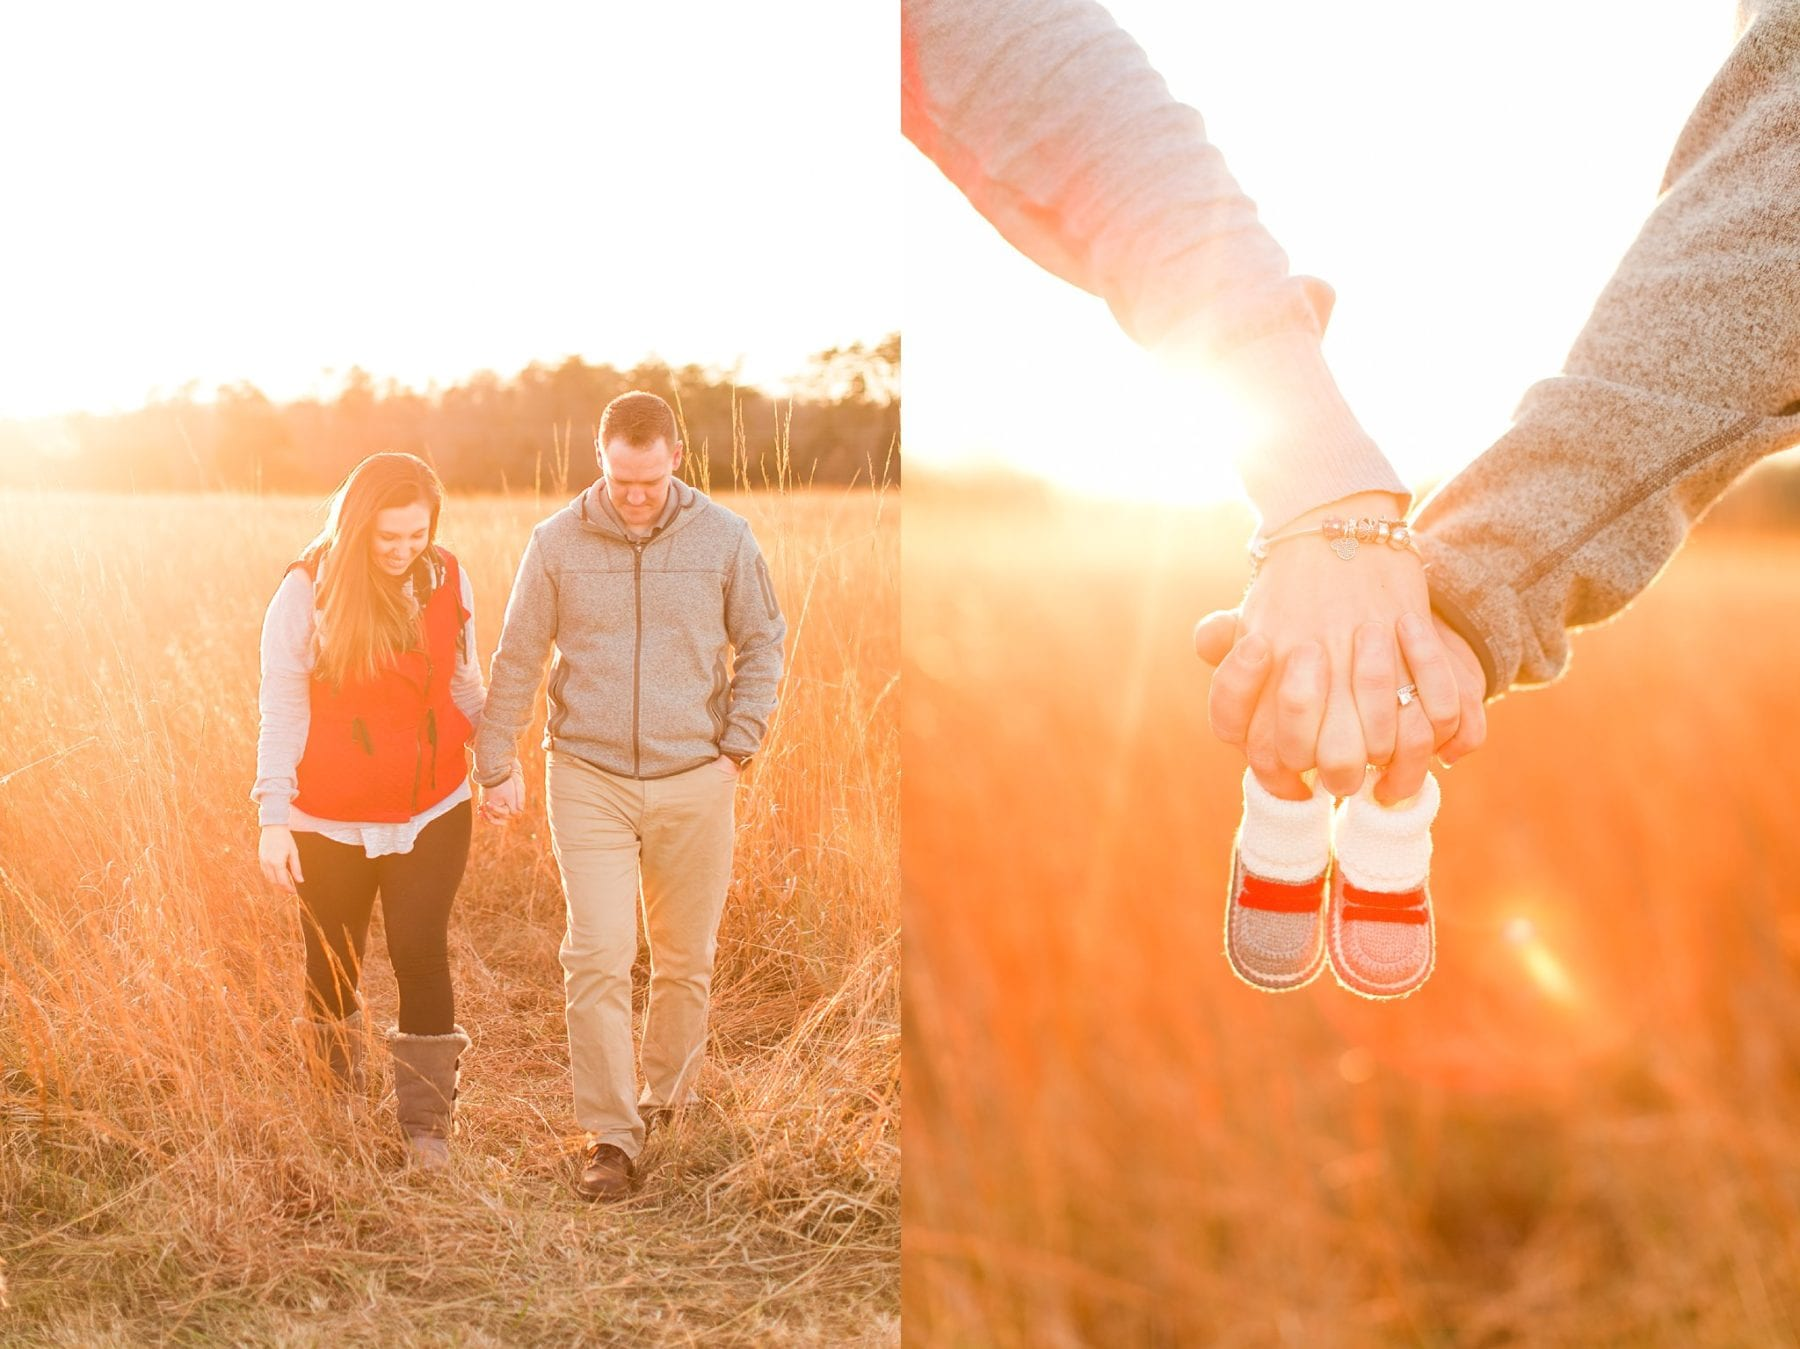 Firefighter Baby Announcement Virginia Photographer Megan Kelsey Photography Jeromy & Becky-212.jpg